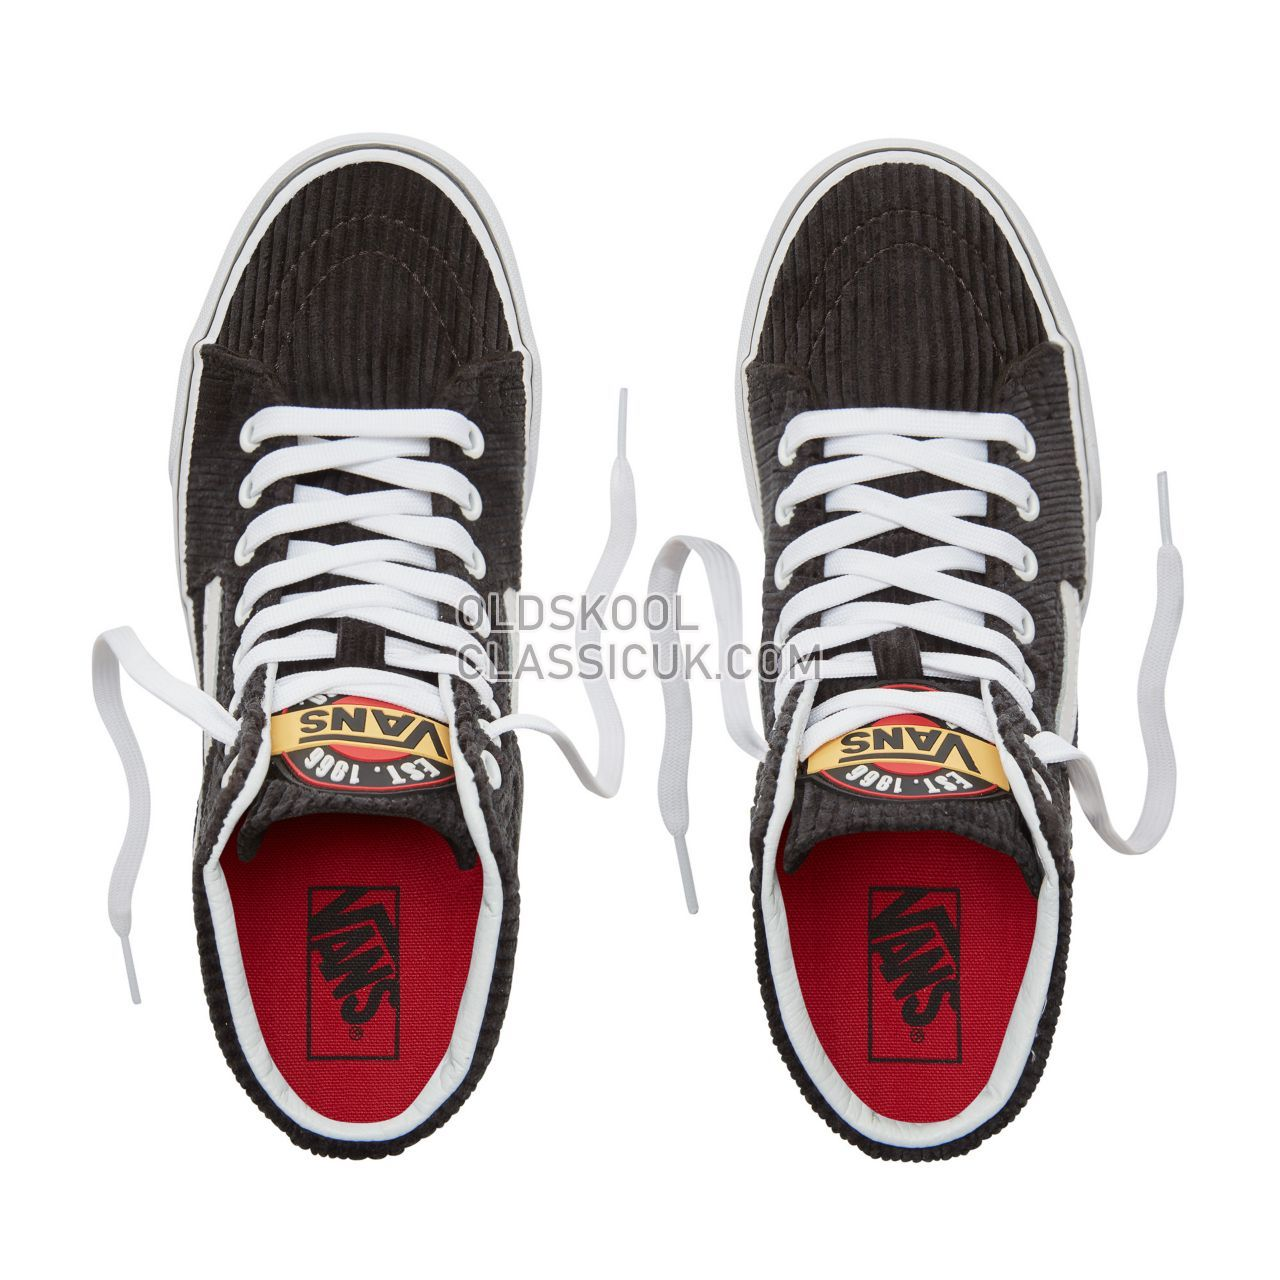 Vans Design Assembly Corduroy Sk8-Hi Sneakers Womens (Design Assembly) Black/True White VA38GEU55 Shoes